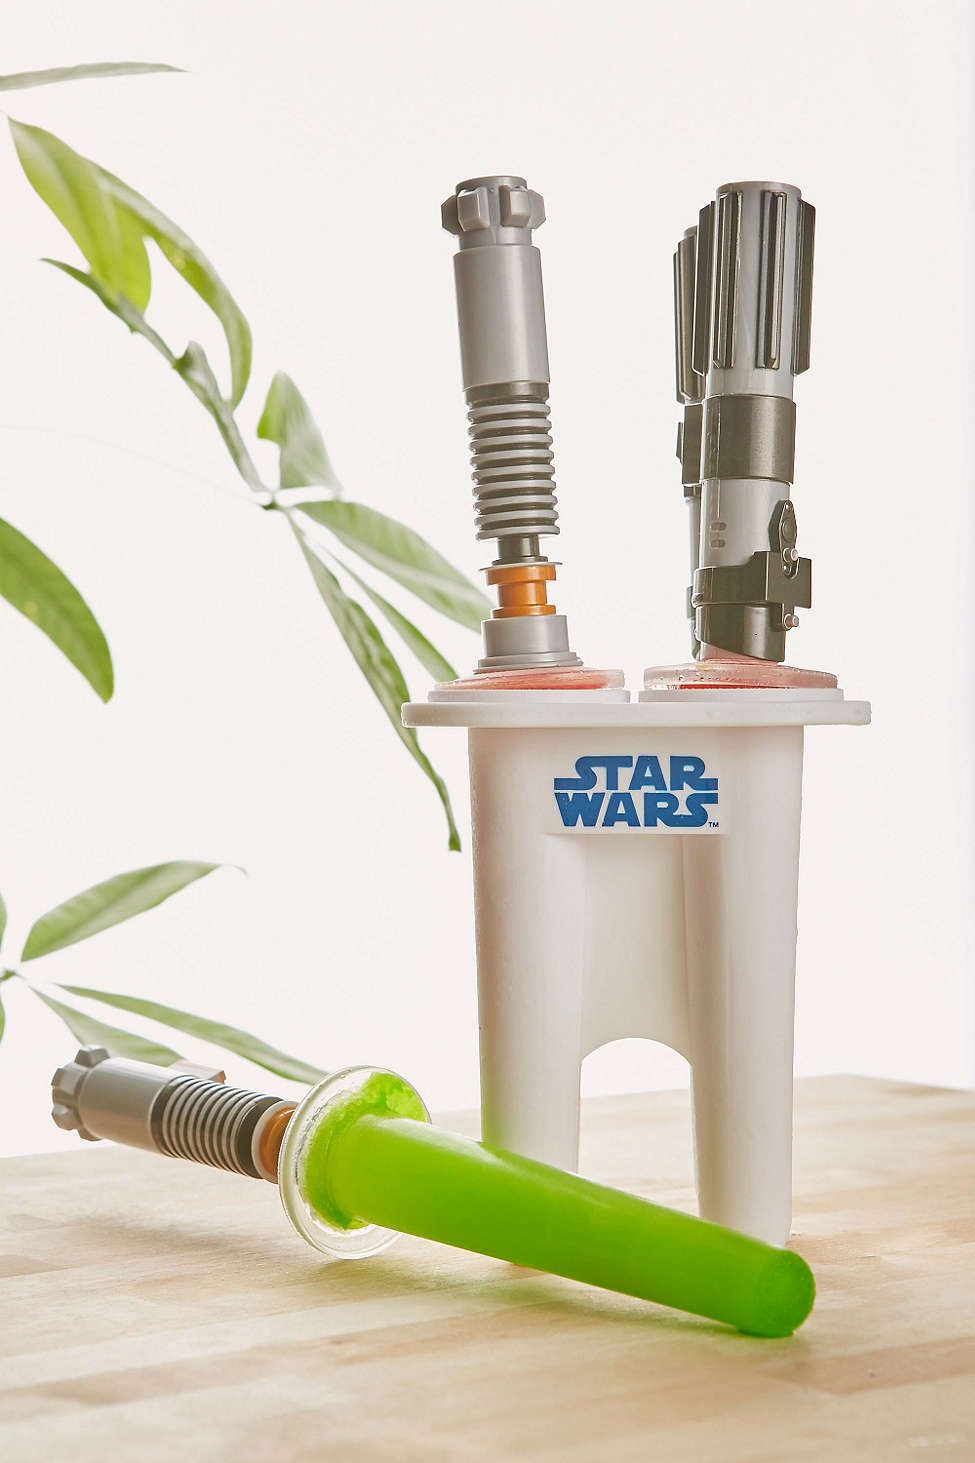 Star Wars Küchenutensilien Star Wars Light Saber Ice Pops They Light Up The Hottest